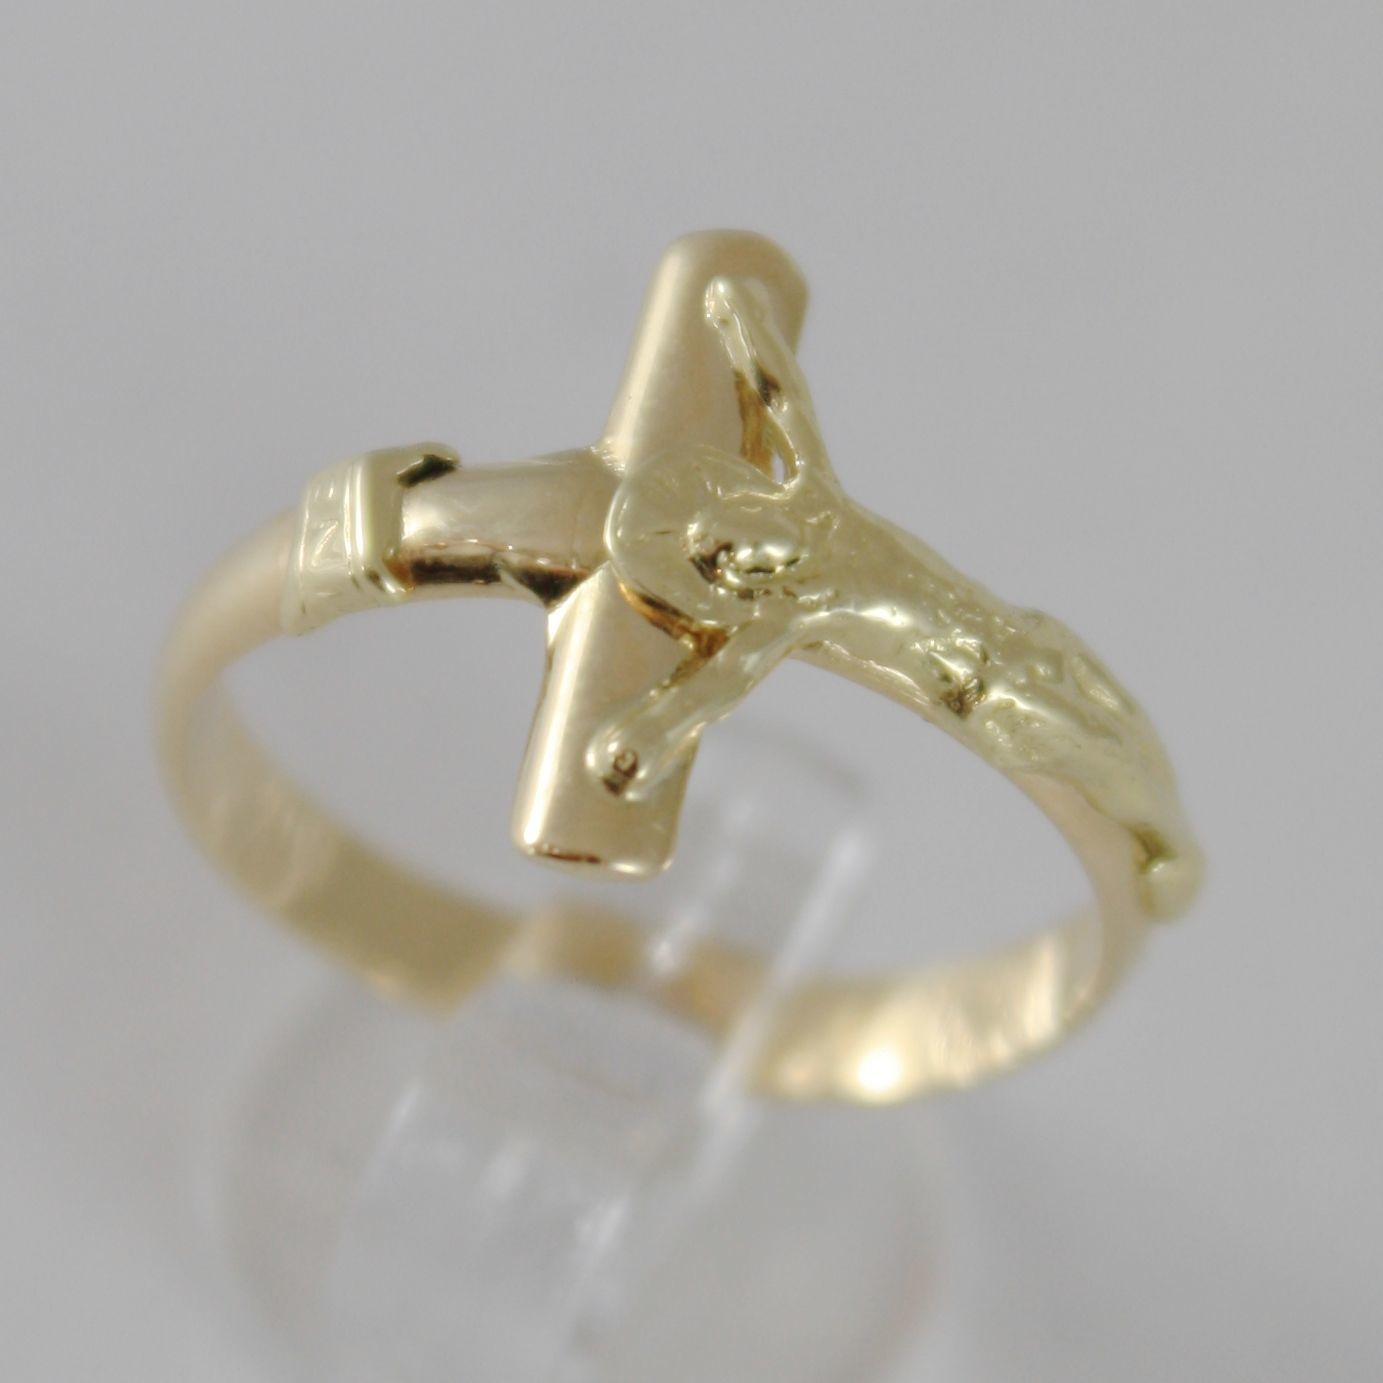 SOLID 18K YELLOW GOLD BAND RING WITH JESUS CROSS LUMINOUS SMOOTH, MADE IN ITALY